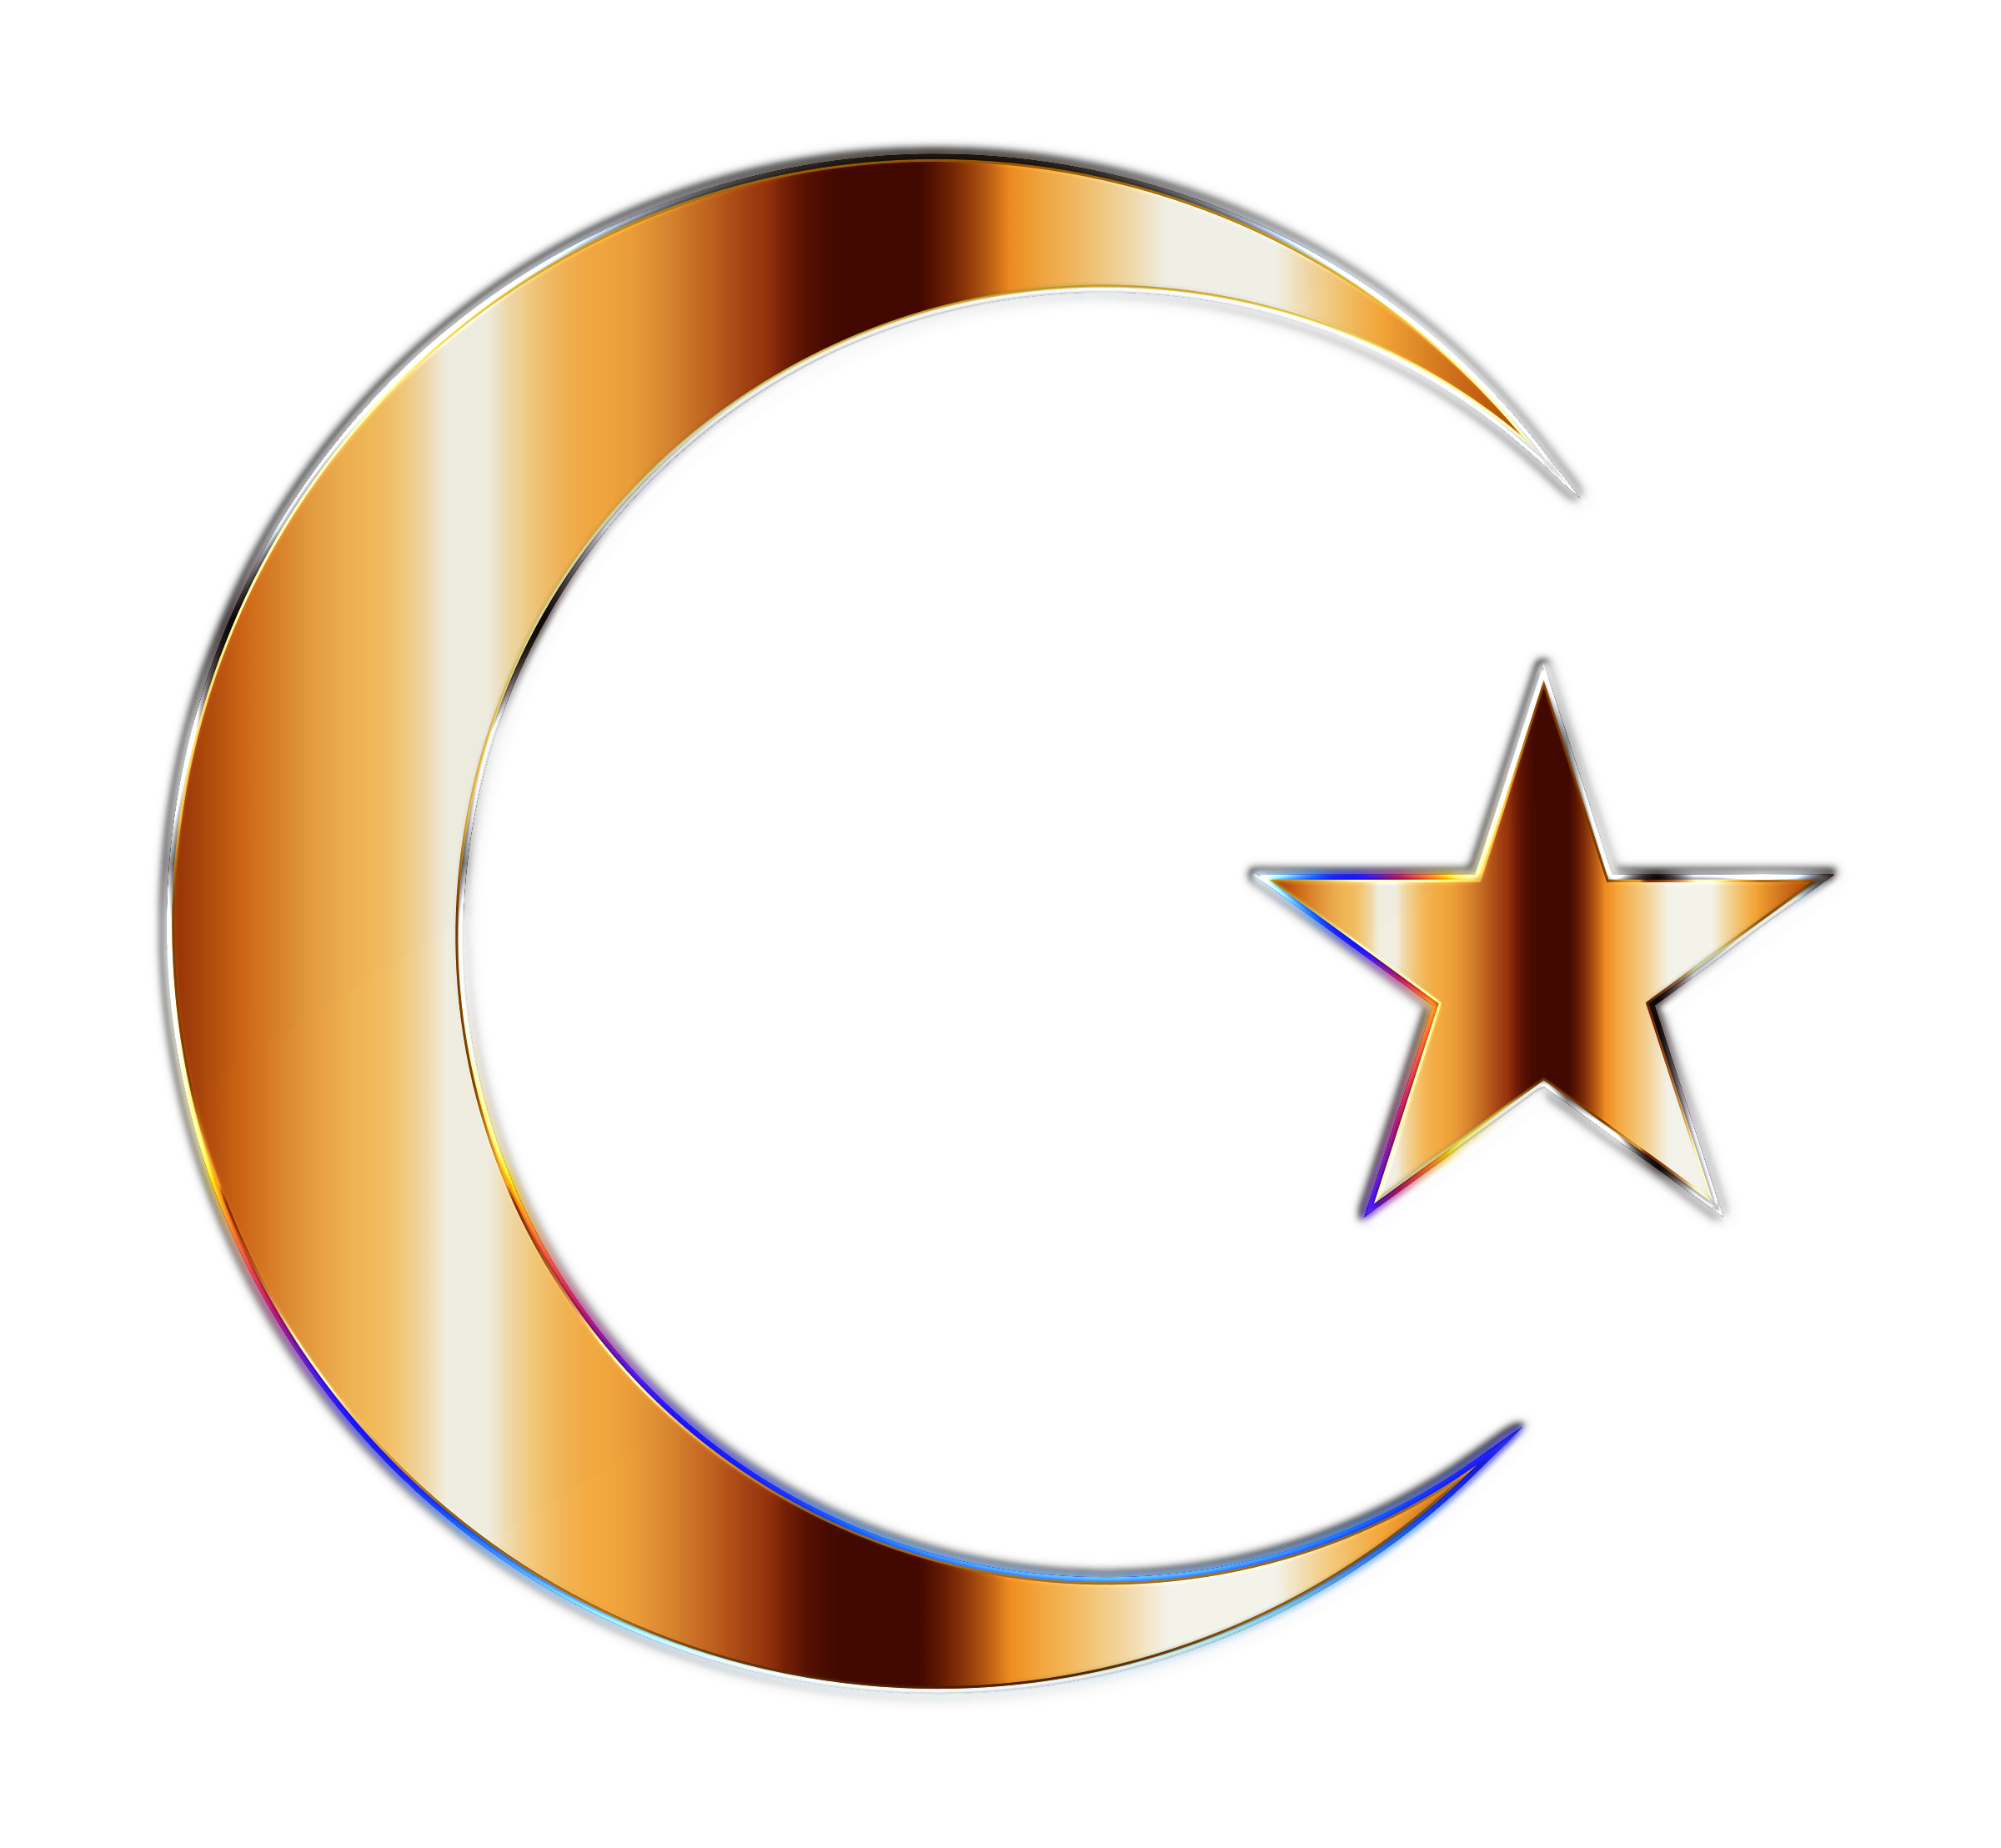 Star in sky clipart png library Clipart - Golden Crescent Moon And Star png library